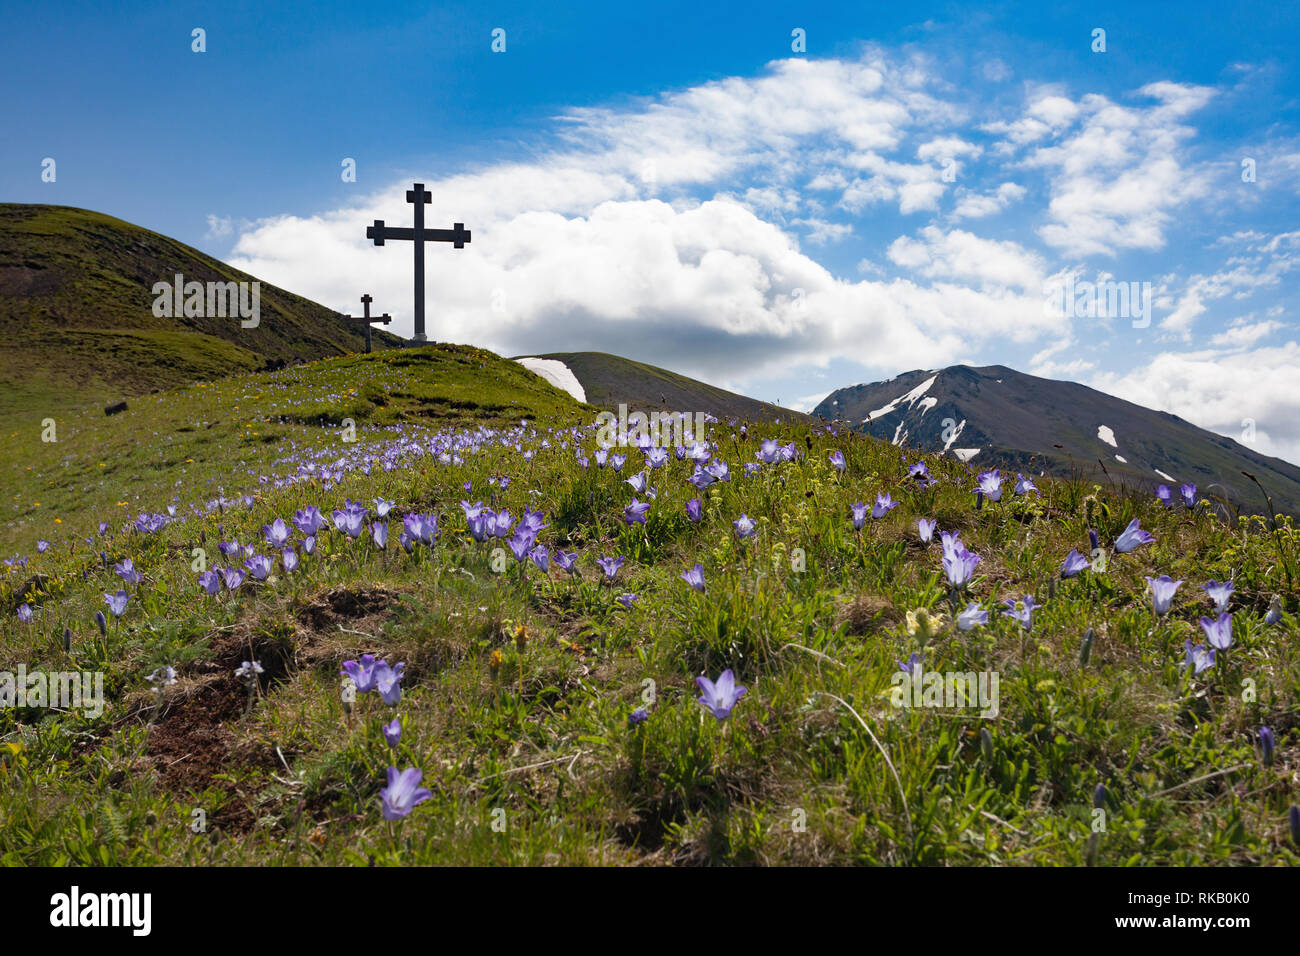 Kreuze am Abano Pass, Georgien Stock Photo